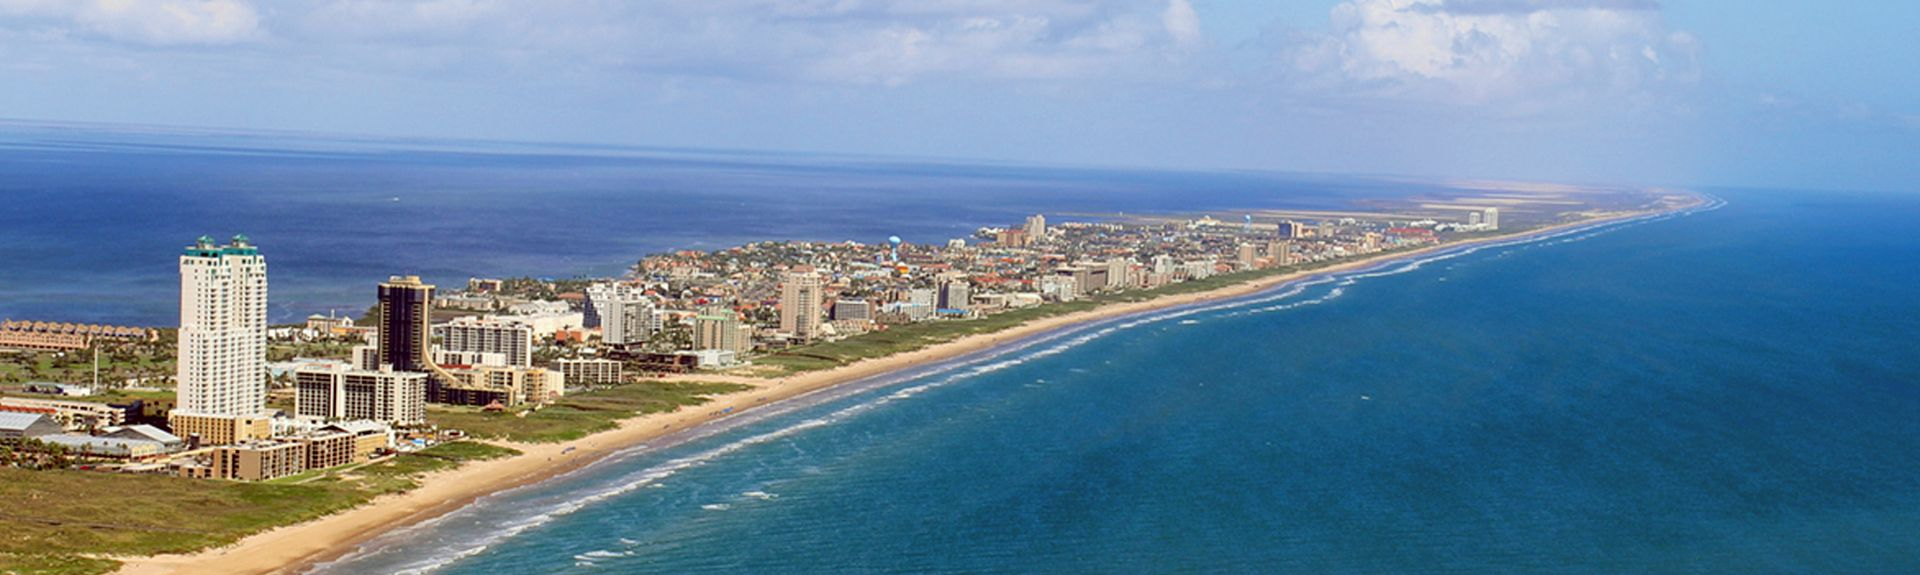 South Padre Island, Texas, United States of America